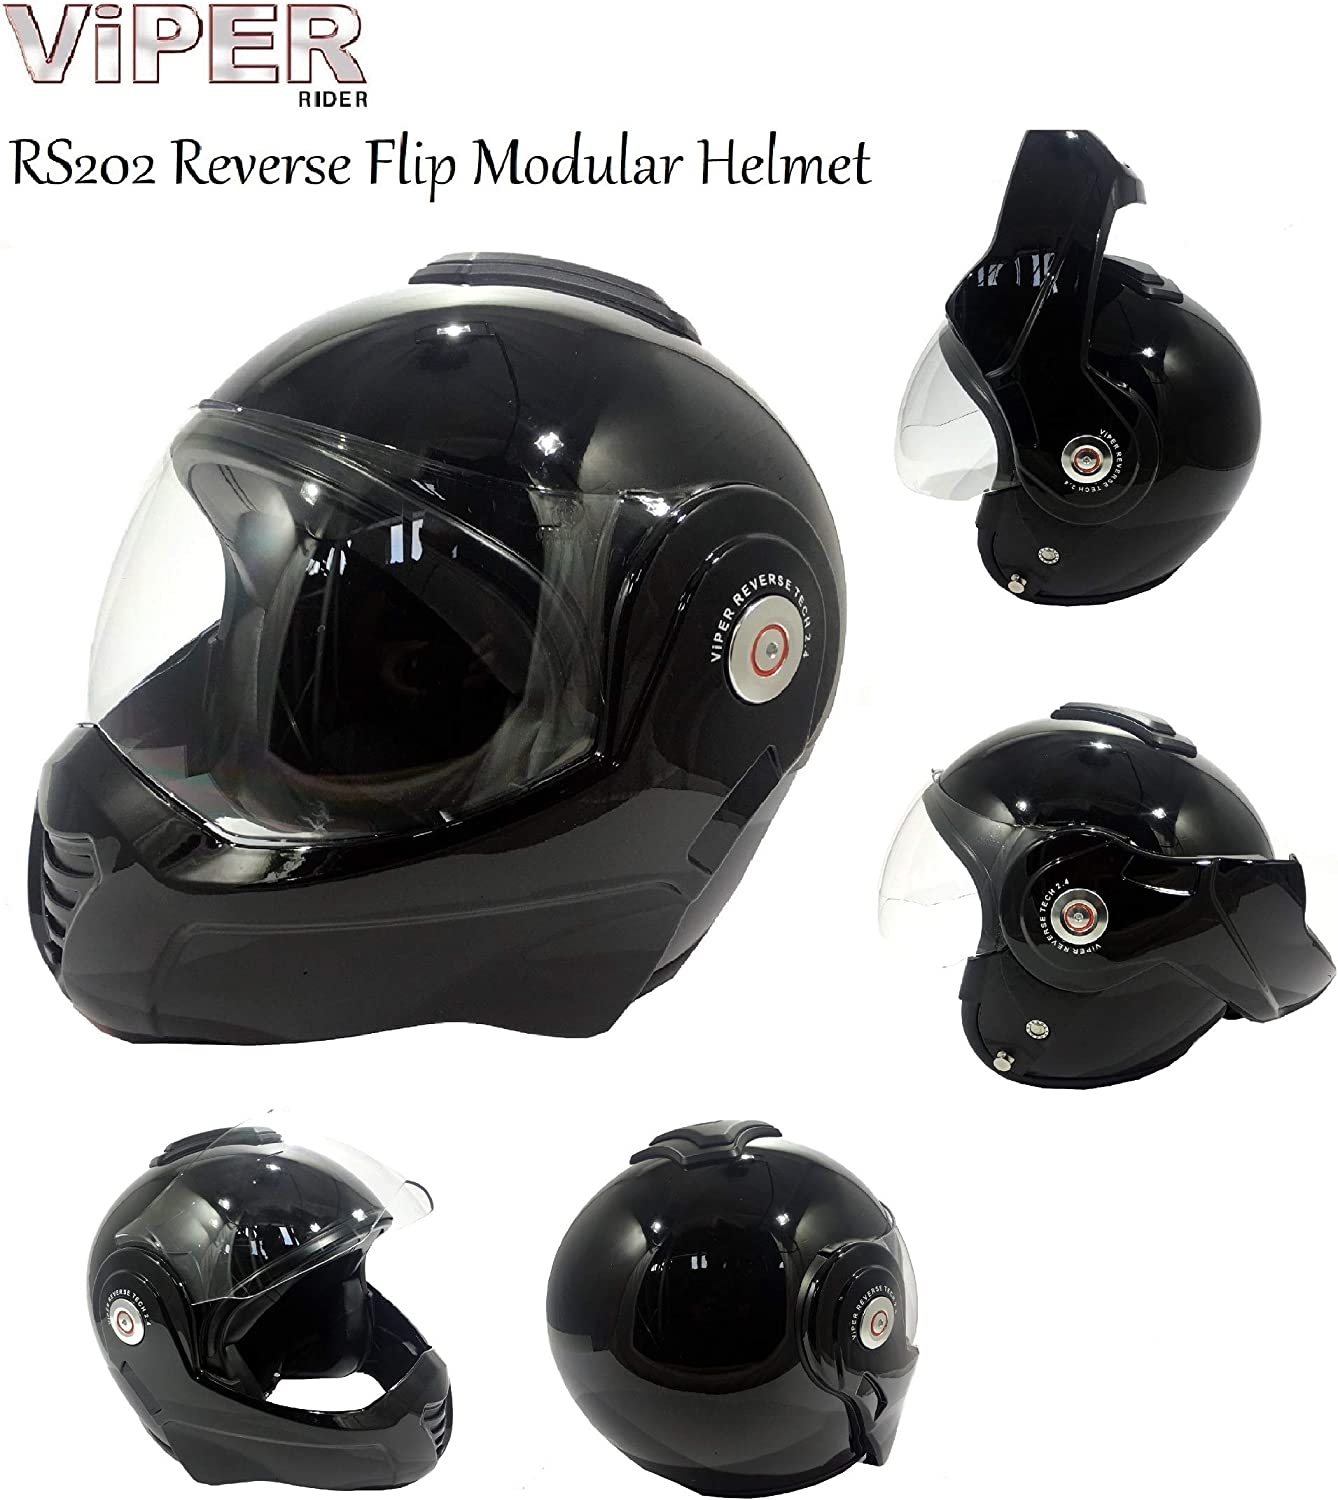 GLOSS BLACK MOTORBIKE ADULT VIPER RS202 REVERSE FLIP FRONT CRASH HELMET New Motorcycle Moped Scooter Touring Sports Racing ECE Approve Open Full Face Modular Helmet